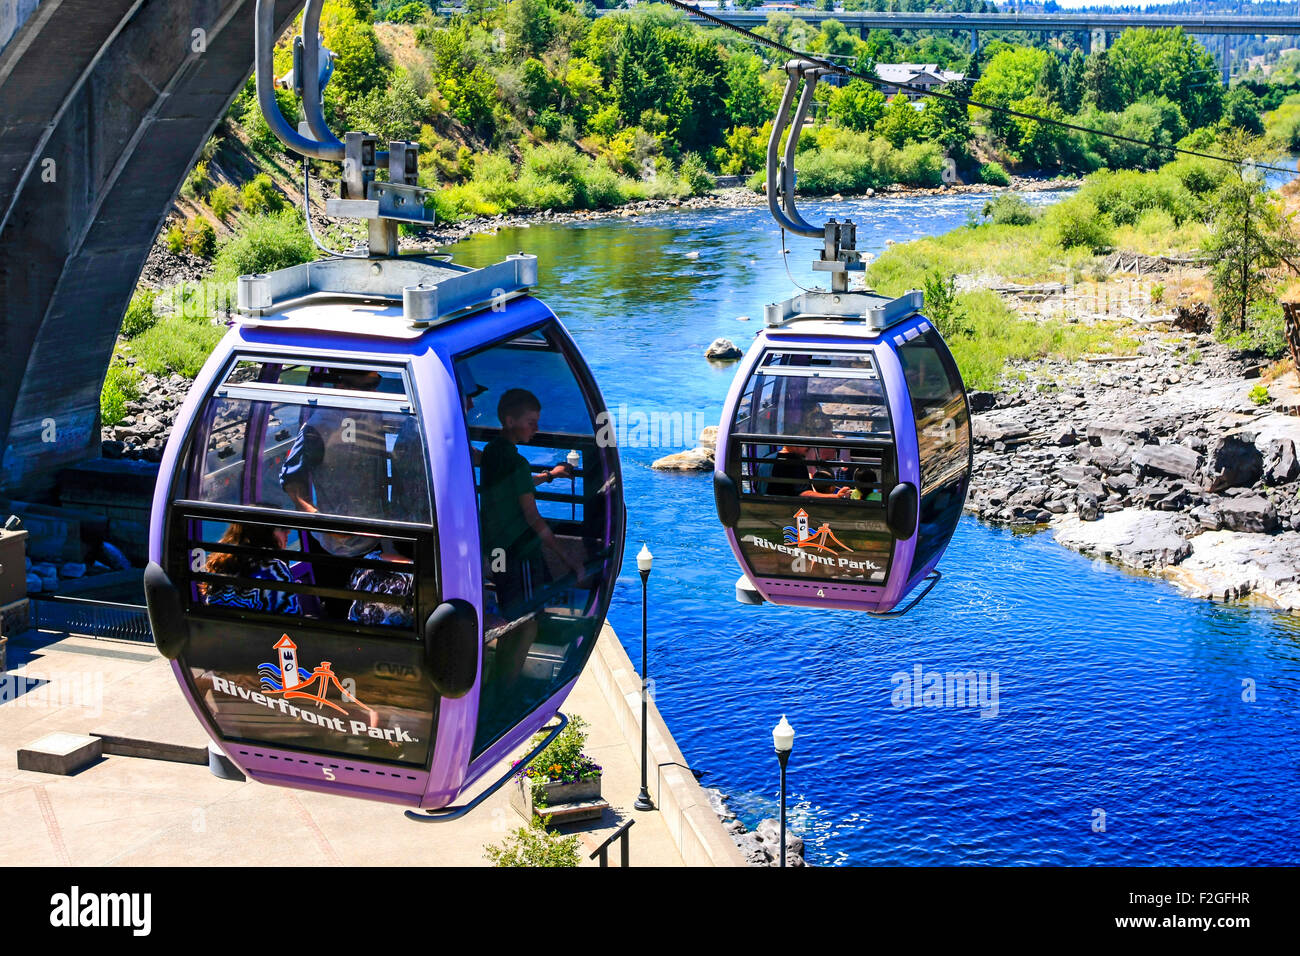 """The Riverfront Park Skyride in Washington. One of the Top 12 Scenic Cable Rides in the World"""" in 2013 by Conde Nast Stock Photo"""